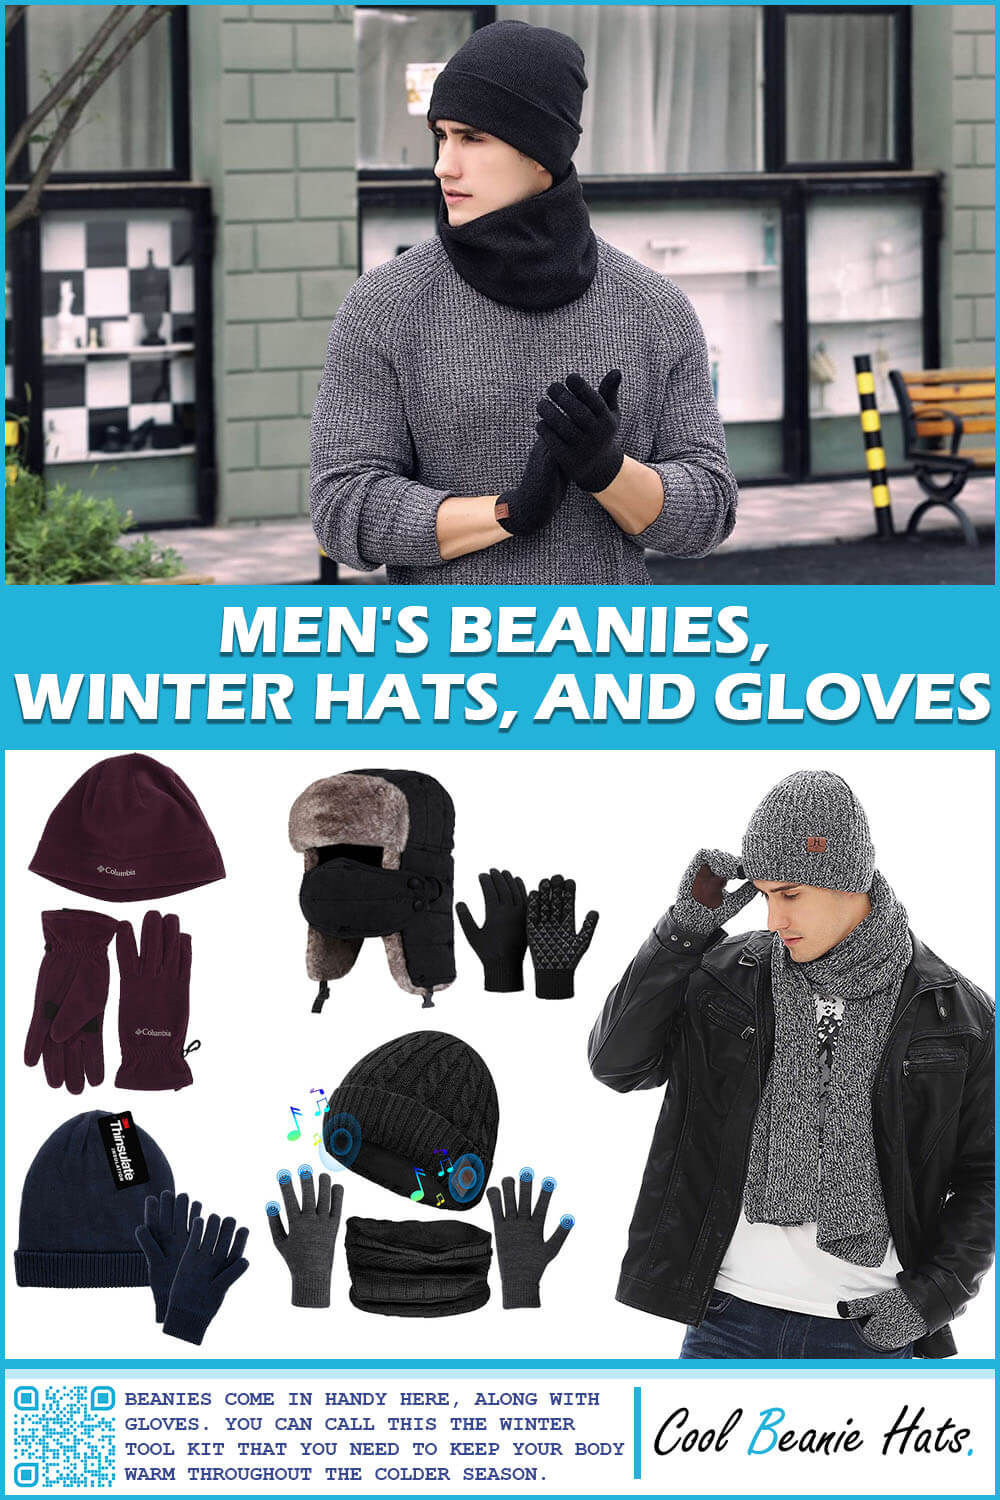 Men's Beanies, Winter Hats, and Gloves